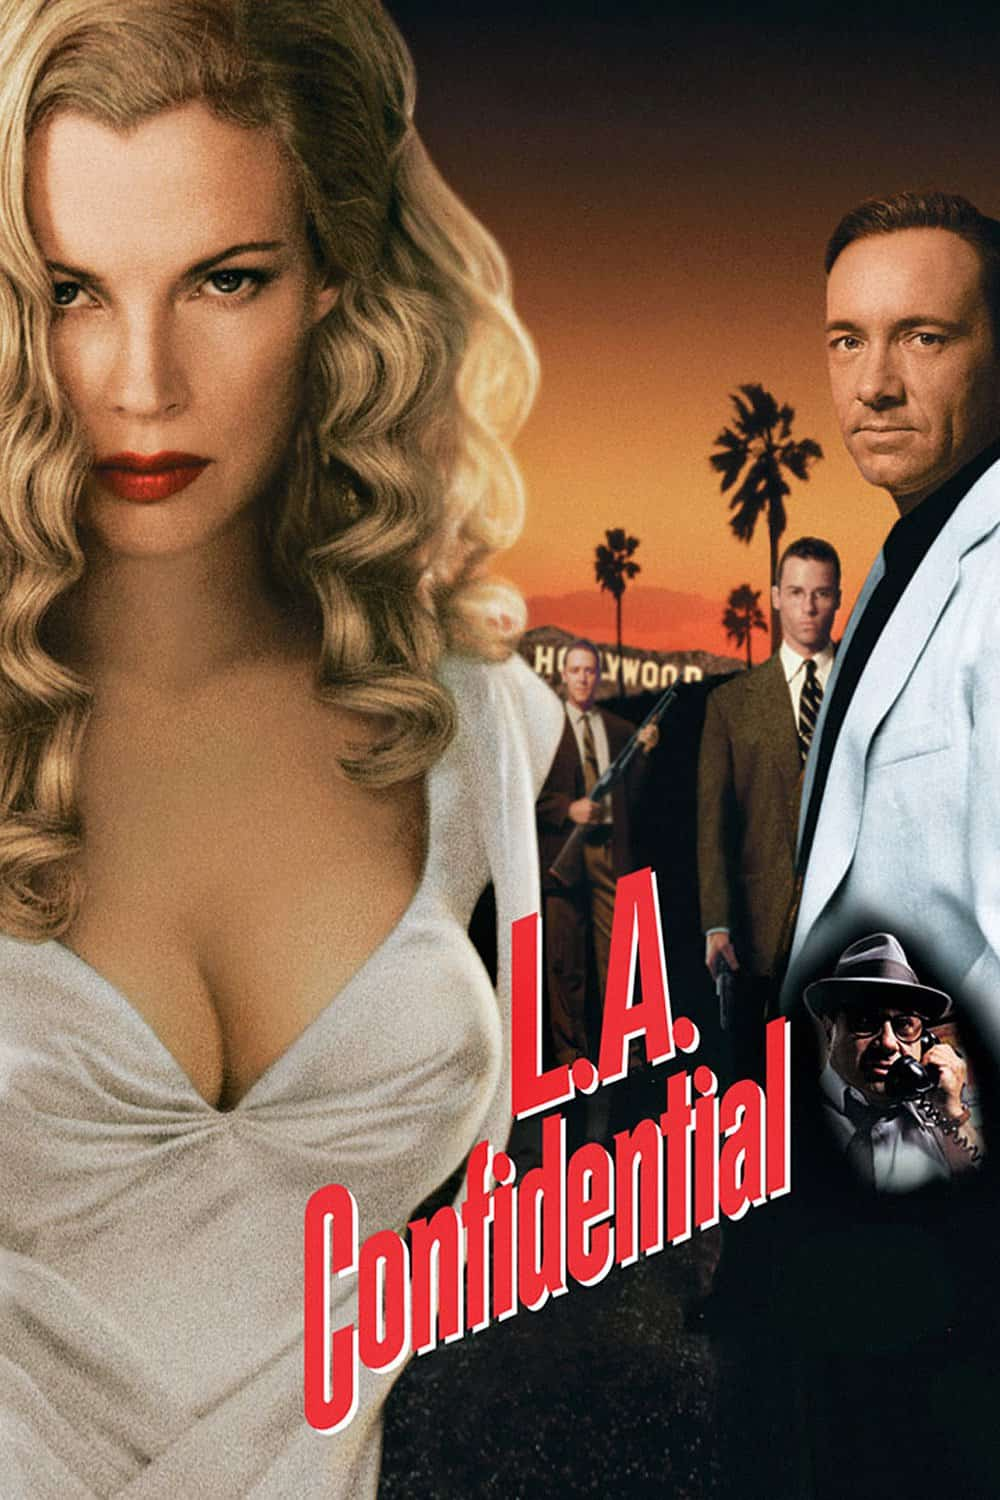 L.A. Confidential,1997